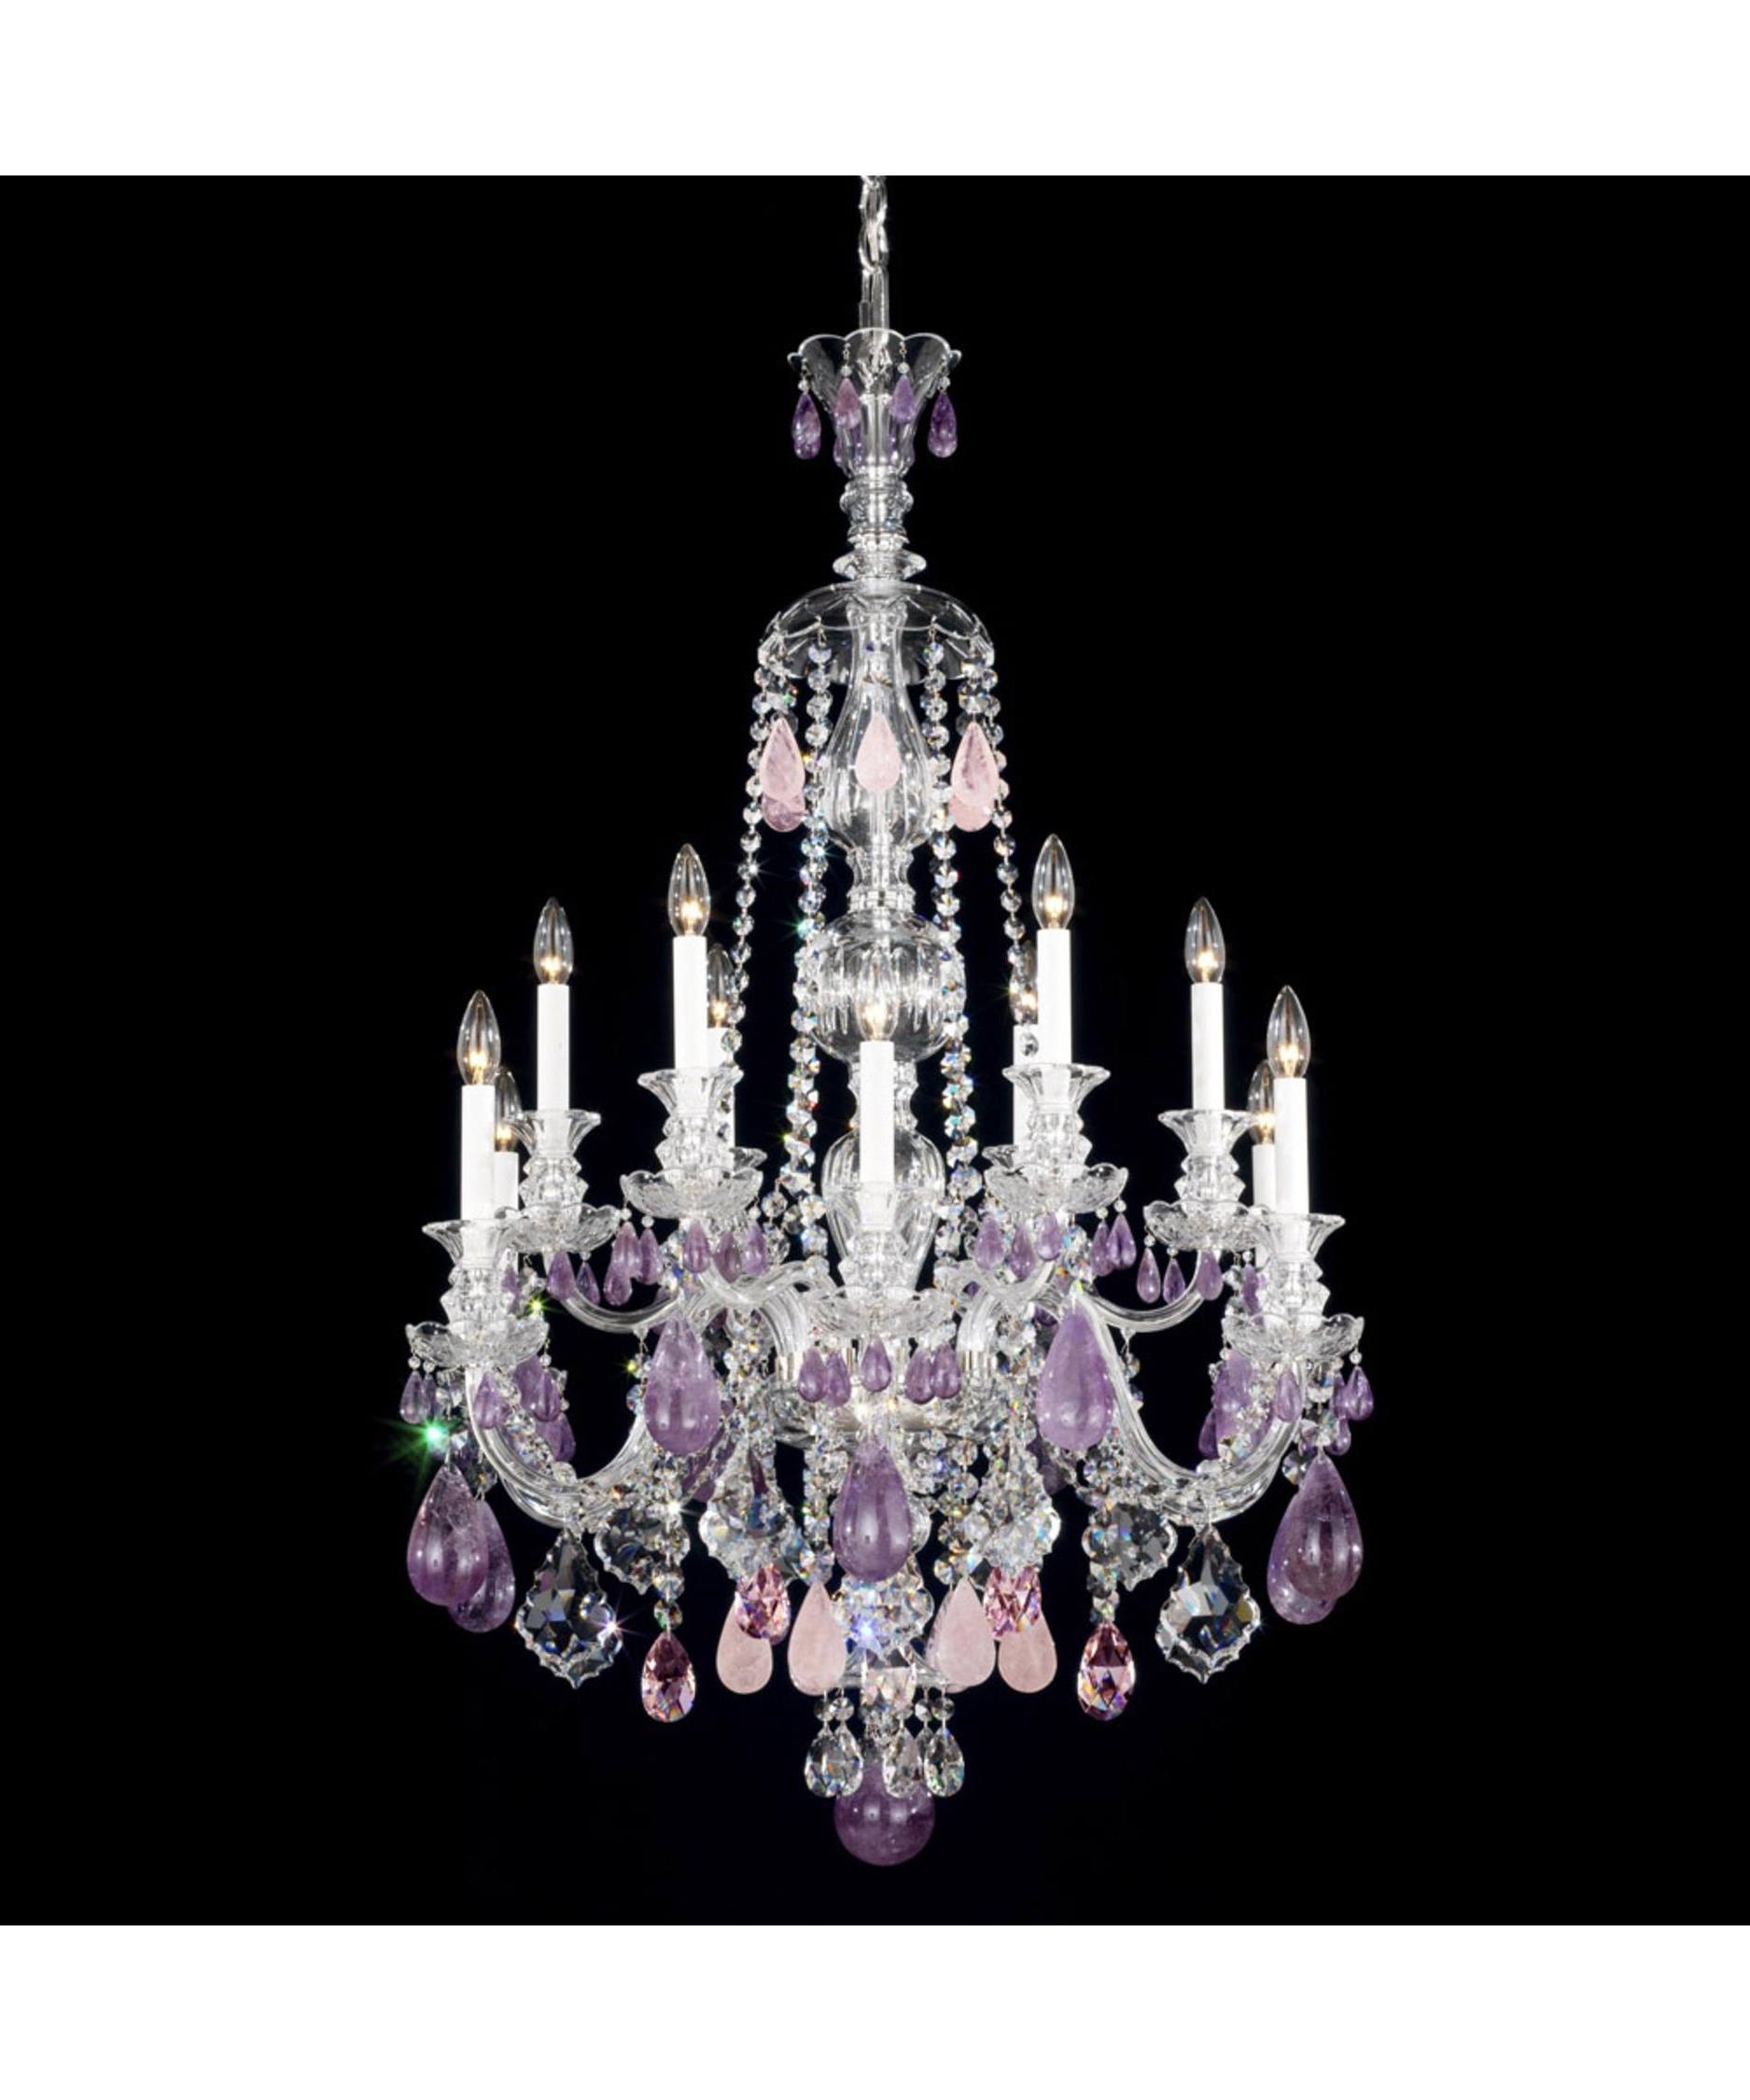 Purple Crystal Chandelier Lights With 2018 Schonbek 5508 Hamilton Rock Crystal 30 Inch Wide 12 Light Chandelier (View 17 of 20)